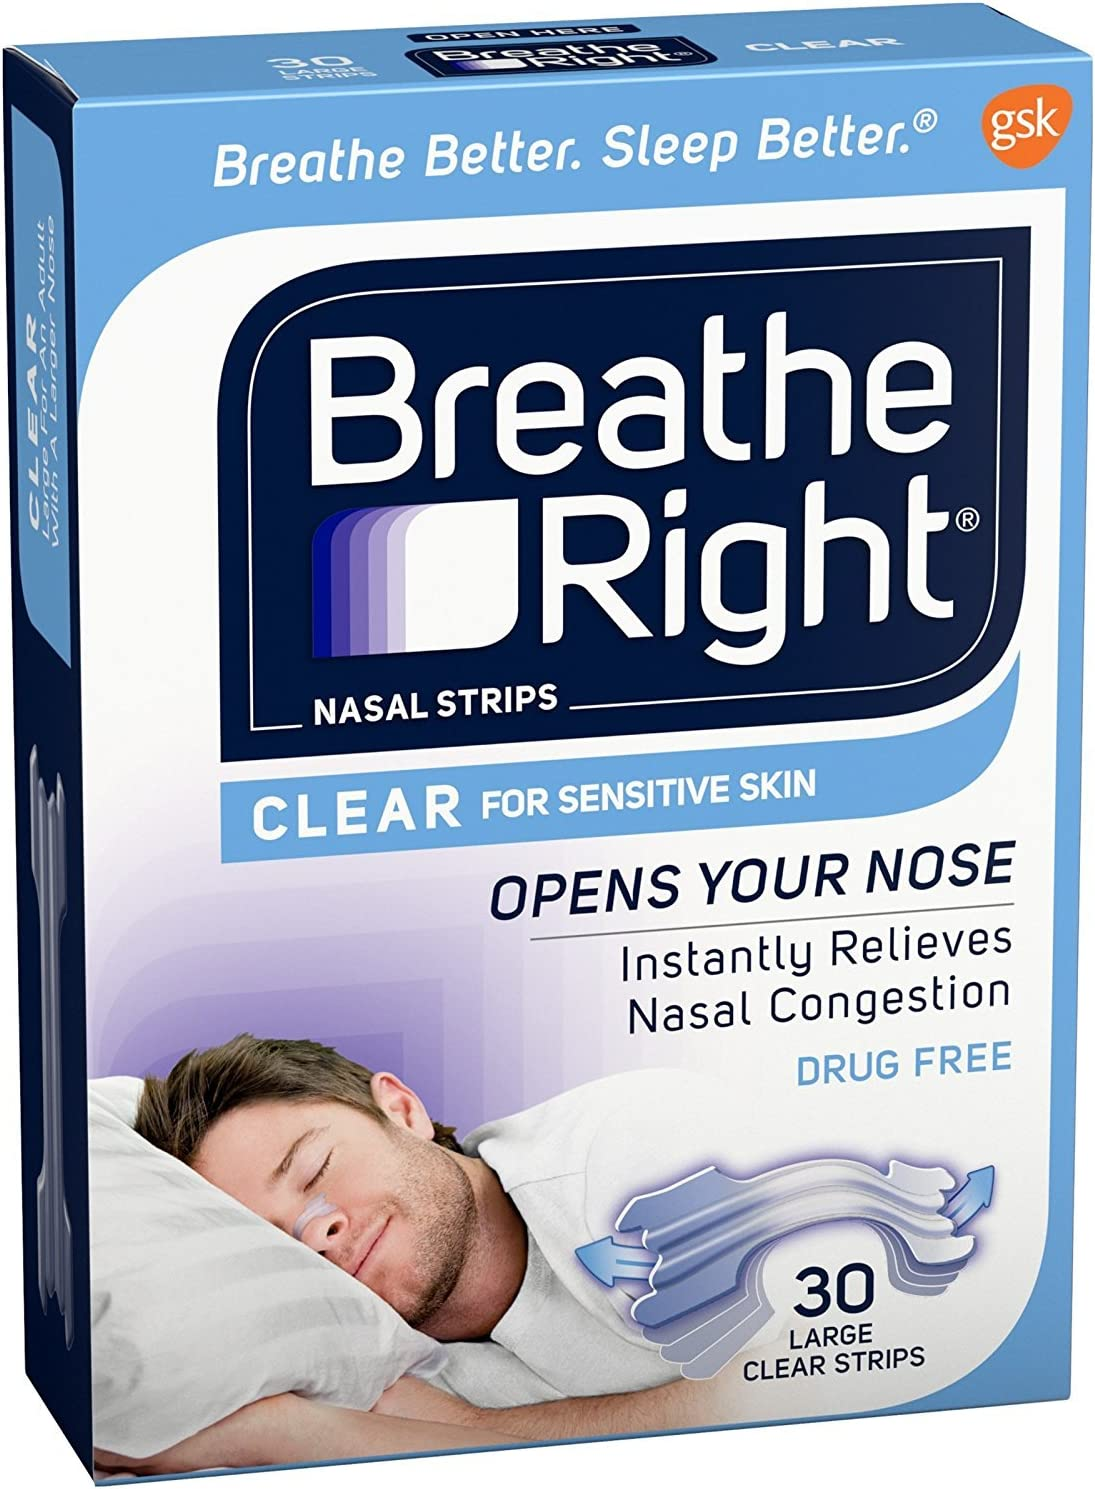 Breathe Right Nasal Strips Clear For Sensitive Skin Large 30 Each: Health & Personal Care